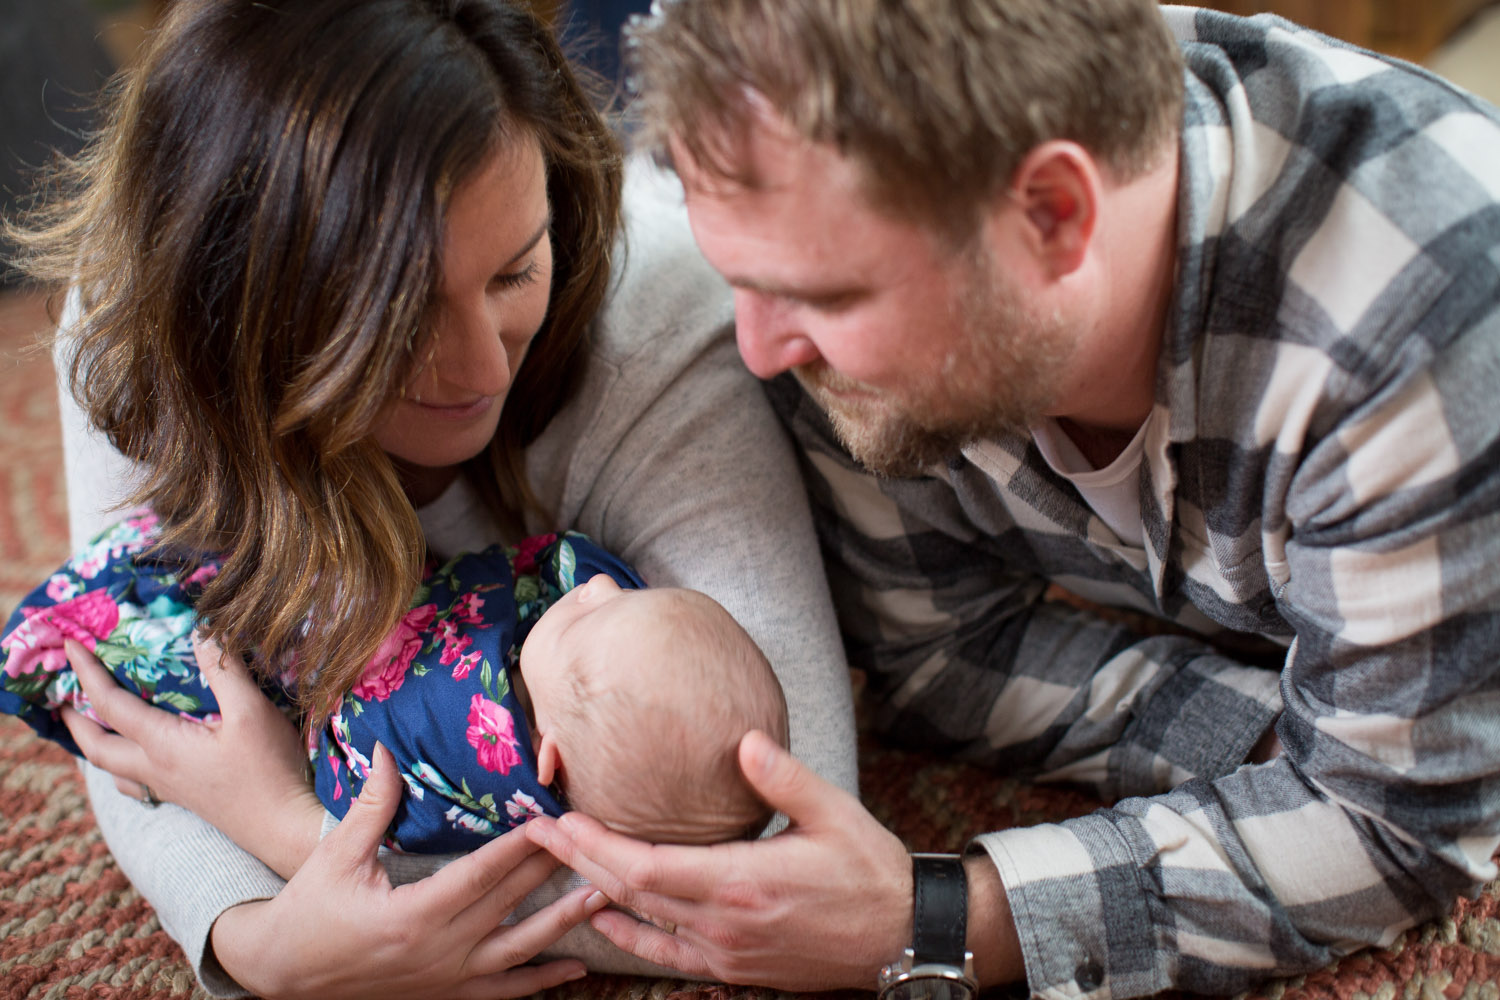 07-in-home-lifestyle-minnesota-newborn-photographer-navy-pink-floral-wrap-mom-and-dad-new-parents-mahonen-photography.jpg